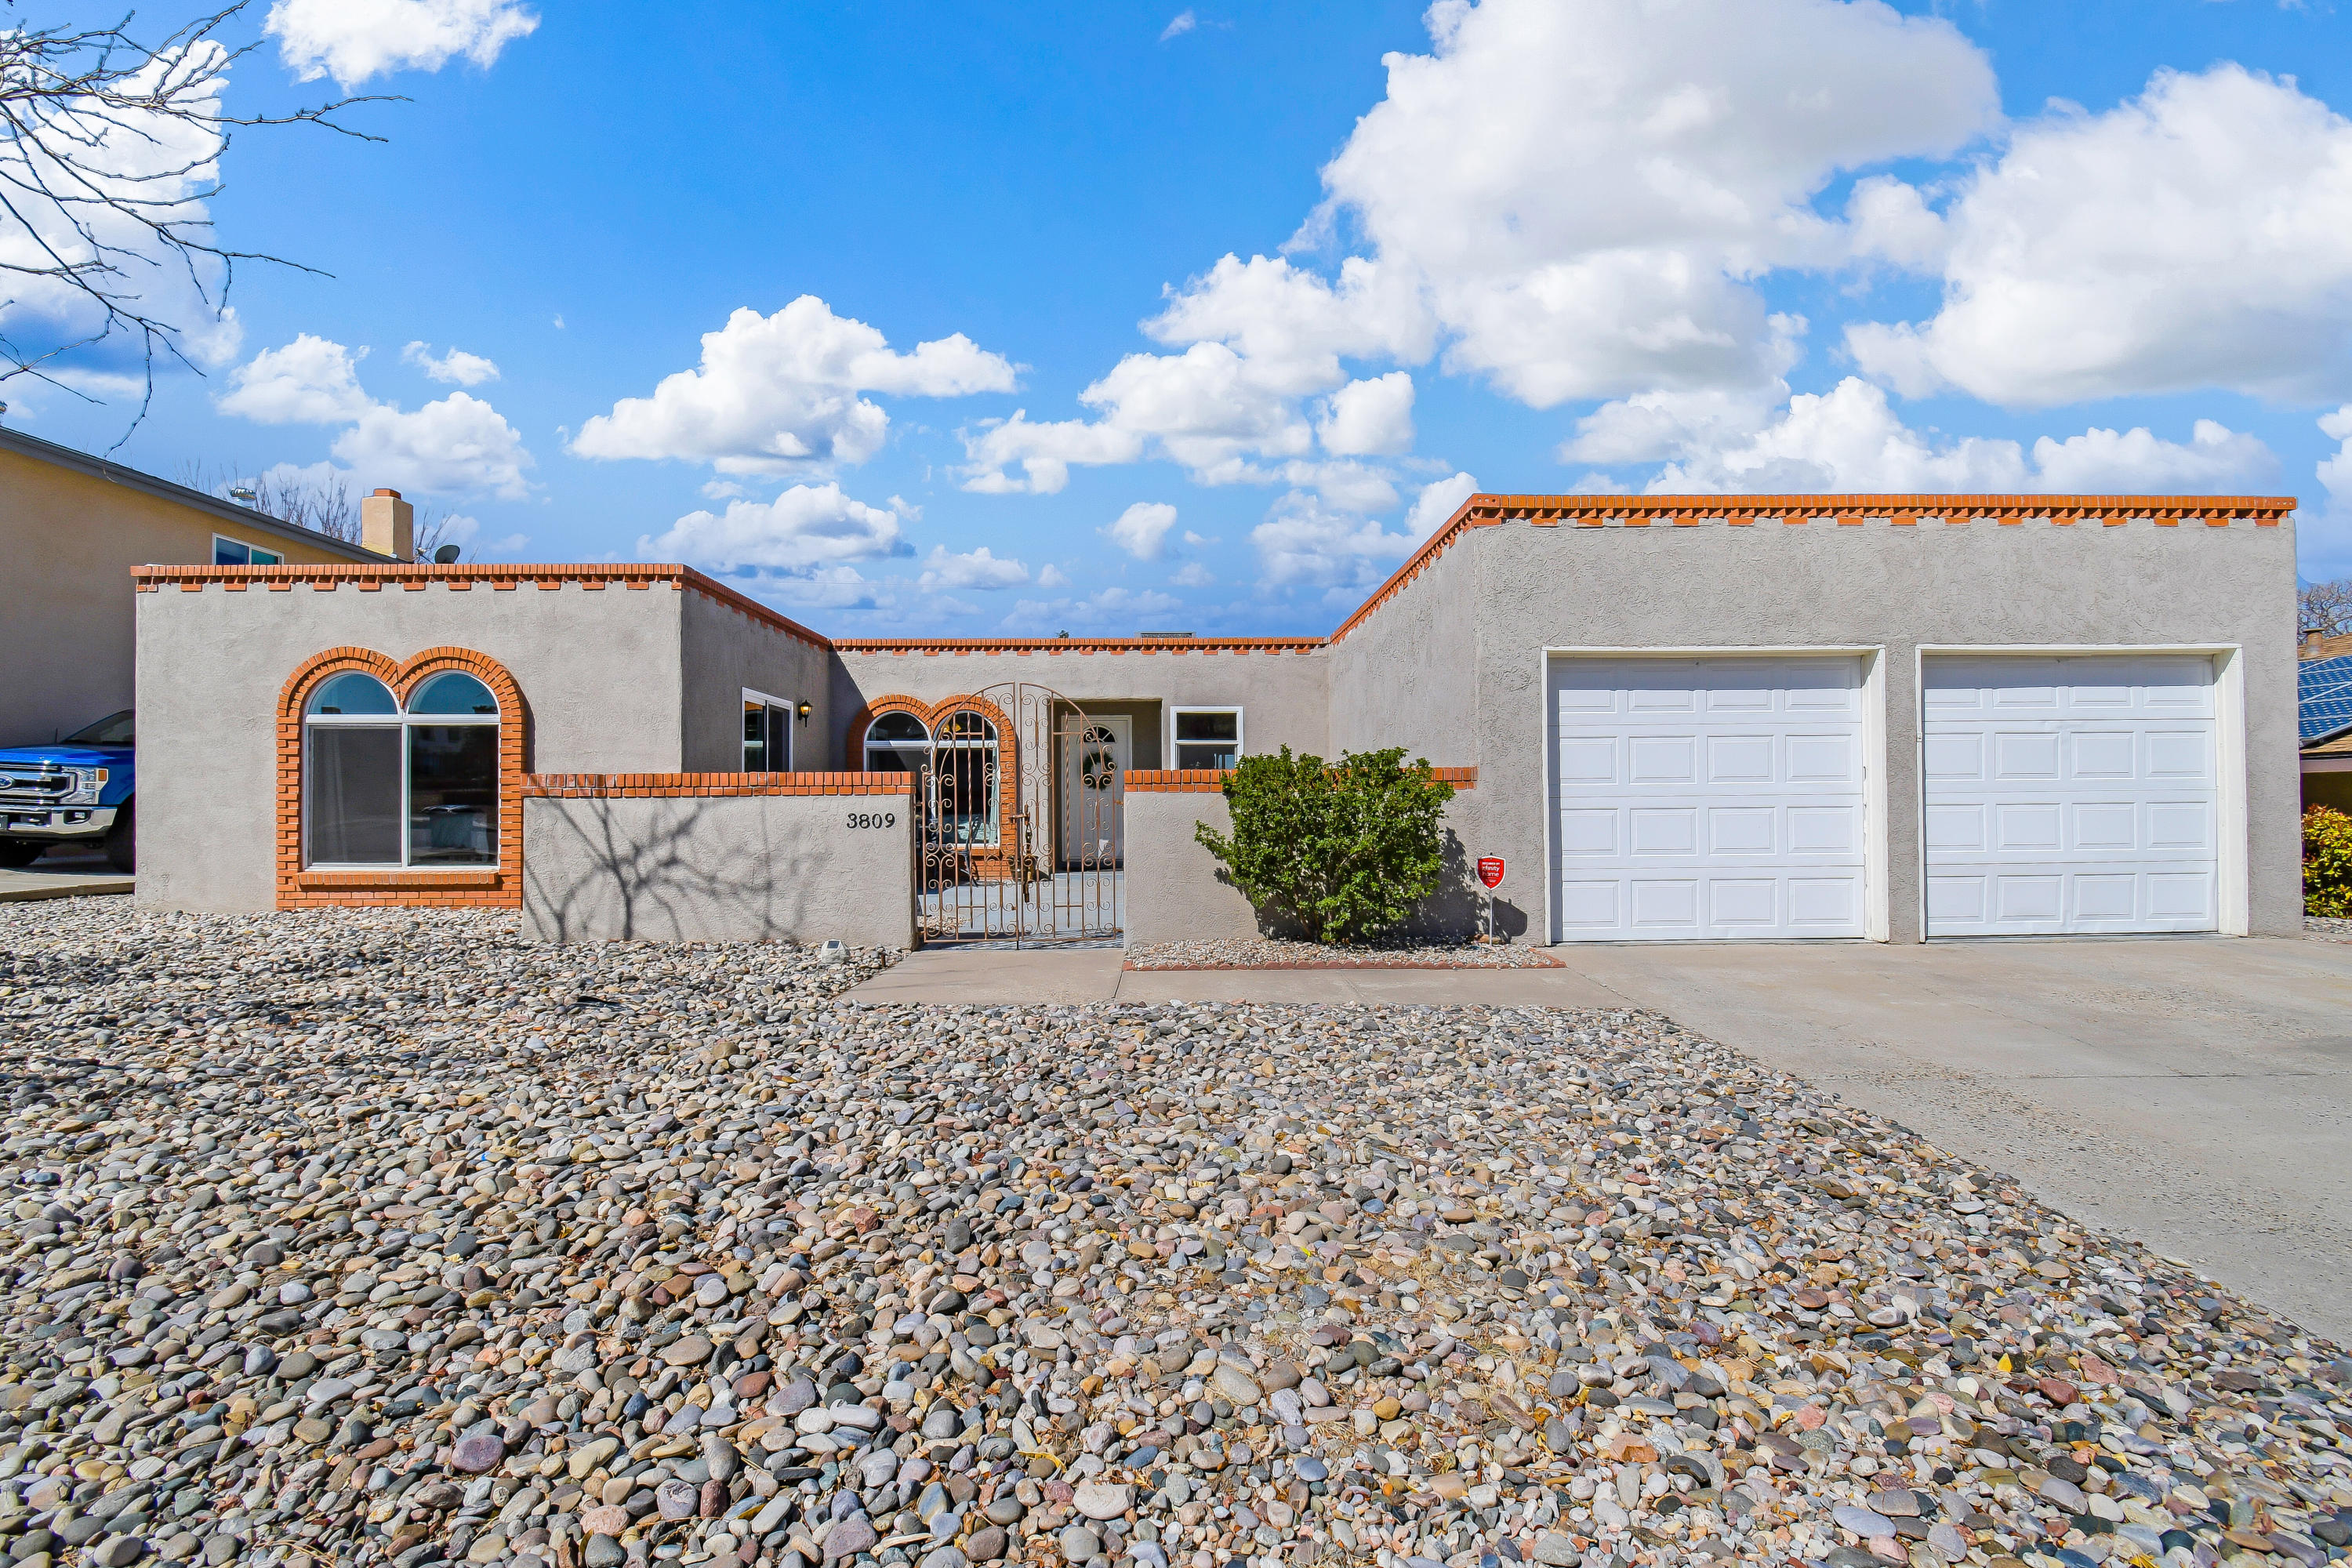 Beautifully remodeled 4 bedroom home in Sandia High school area.  Easy access to Wyoming and Montgomery.  Gorgeous kitchen opens up to two separate living spaces.  Sandia Mountain views out the front, and amazing sunsets to the back.  All mechanical features, including refrigerated air, from 2018.  TPO roof from 2018.